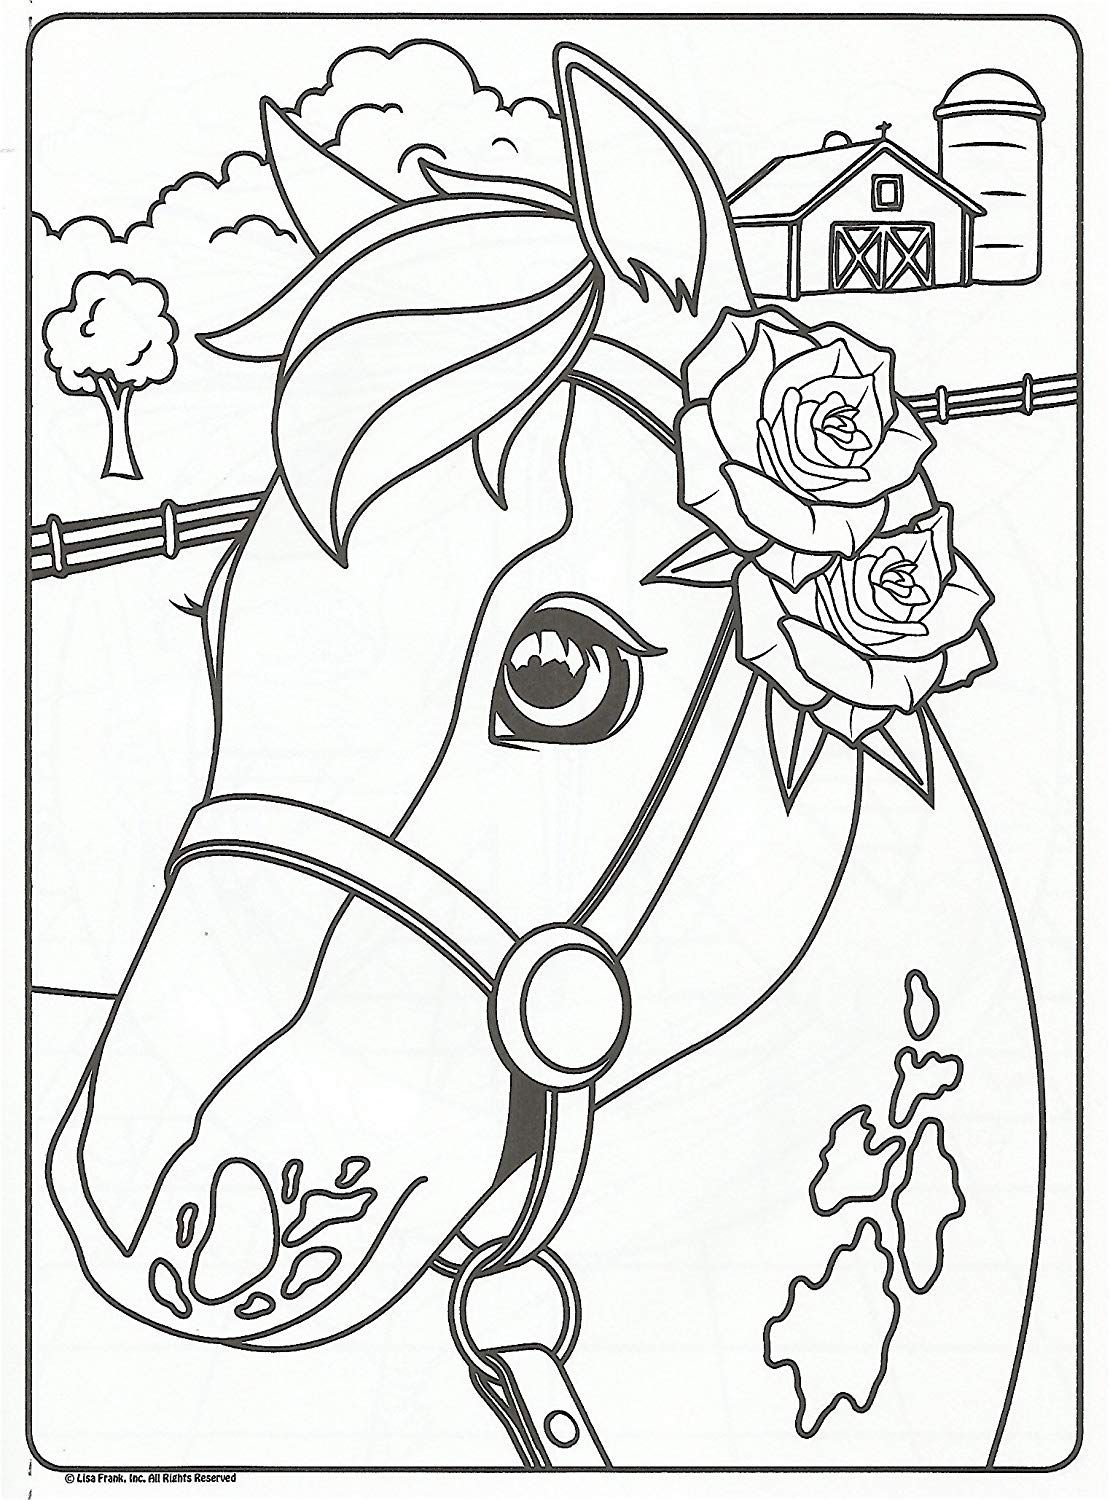 Amazon Com Lisa Frank Color And Trace Book With Stand Up Characters Toys Games Puppy Coloring Pages Horse Coloring Pages Dog Coloring Page [ 1500 x 1110 Pixel ]